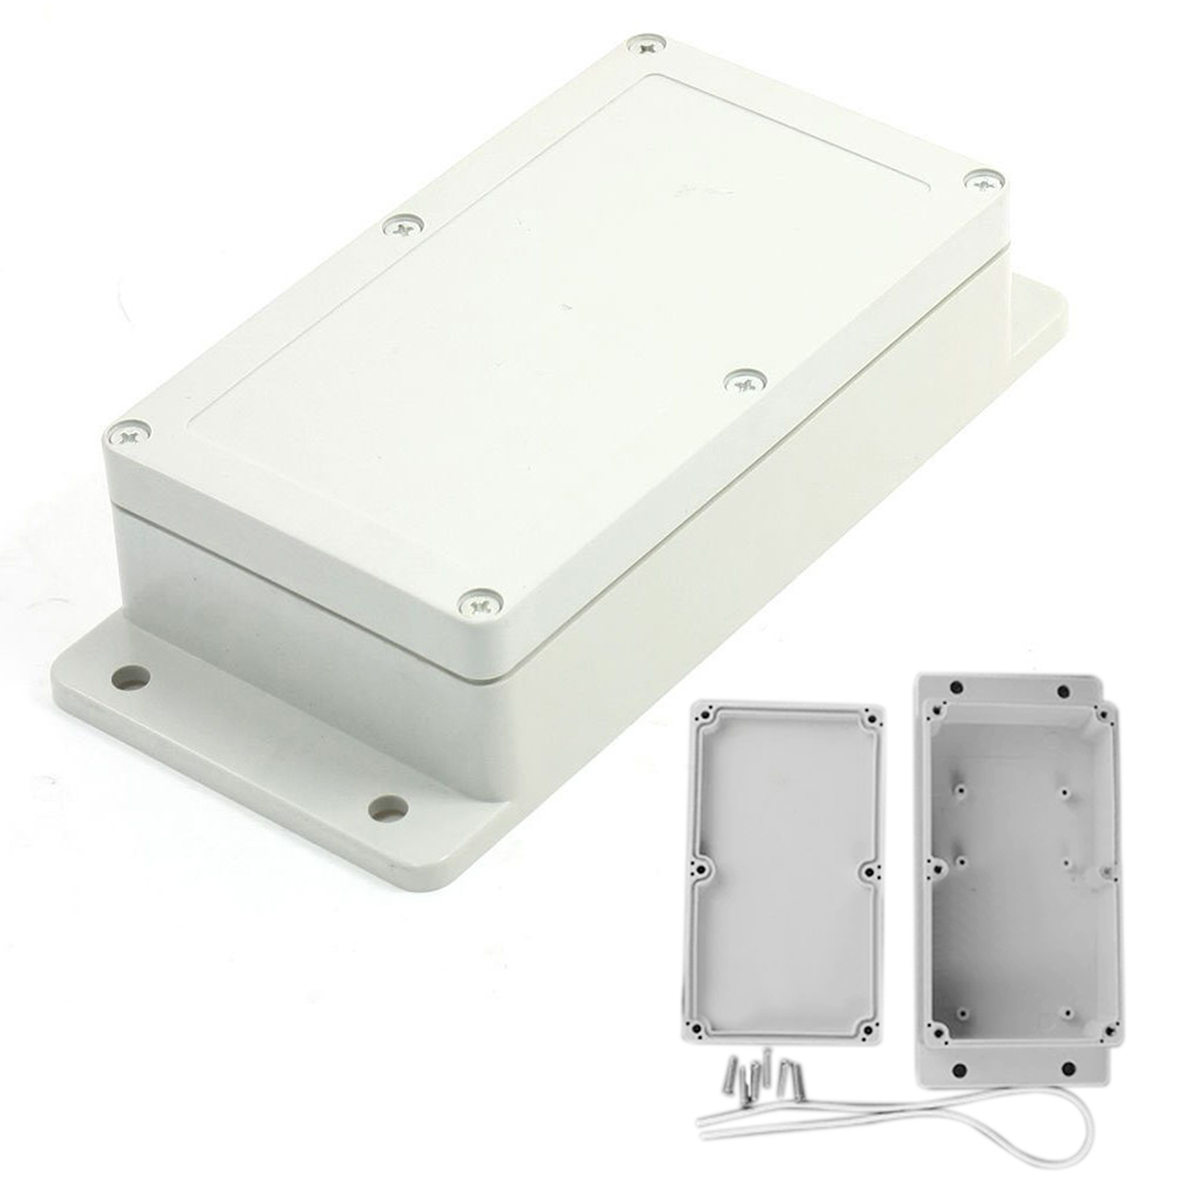 New White Waterproof Enclosure Junction Box Plastic Power Junction Box Electronic Project Enclosure Case 158x90x46mm white waterproof plastic enclosure box electric power junction case 158mmx90mmx46mm with 6pcs screws